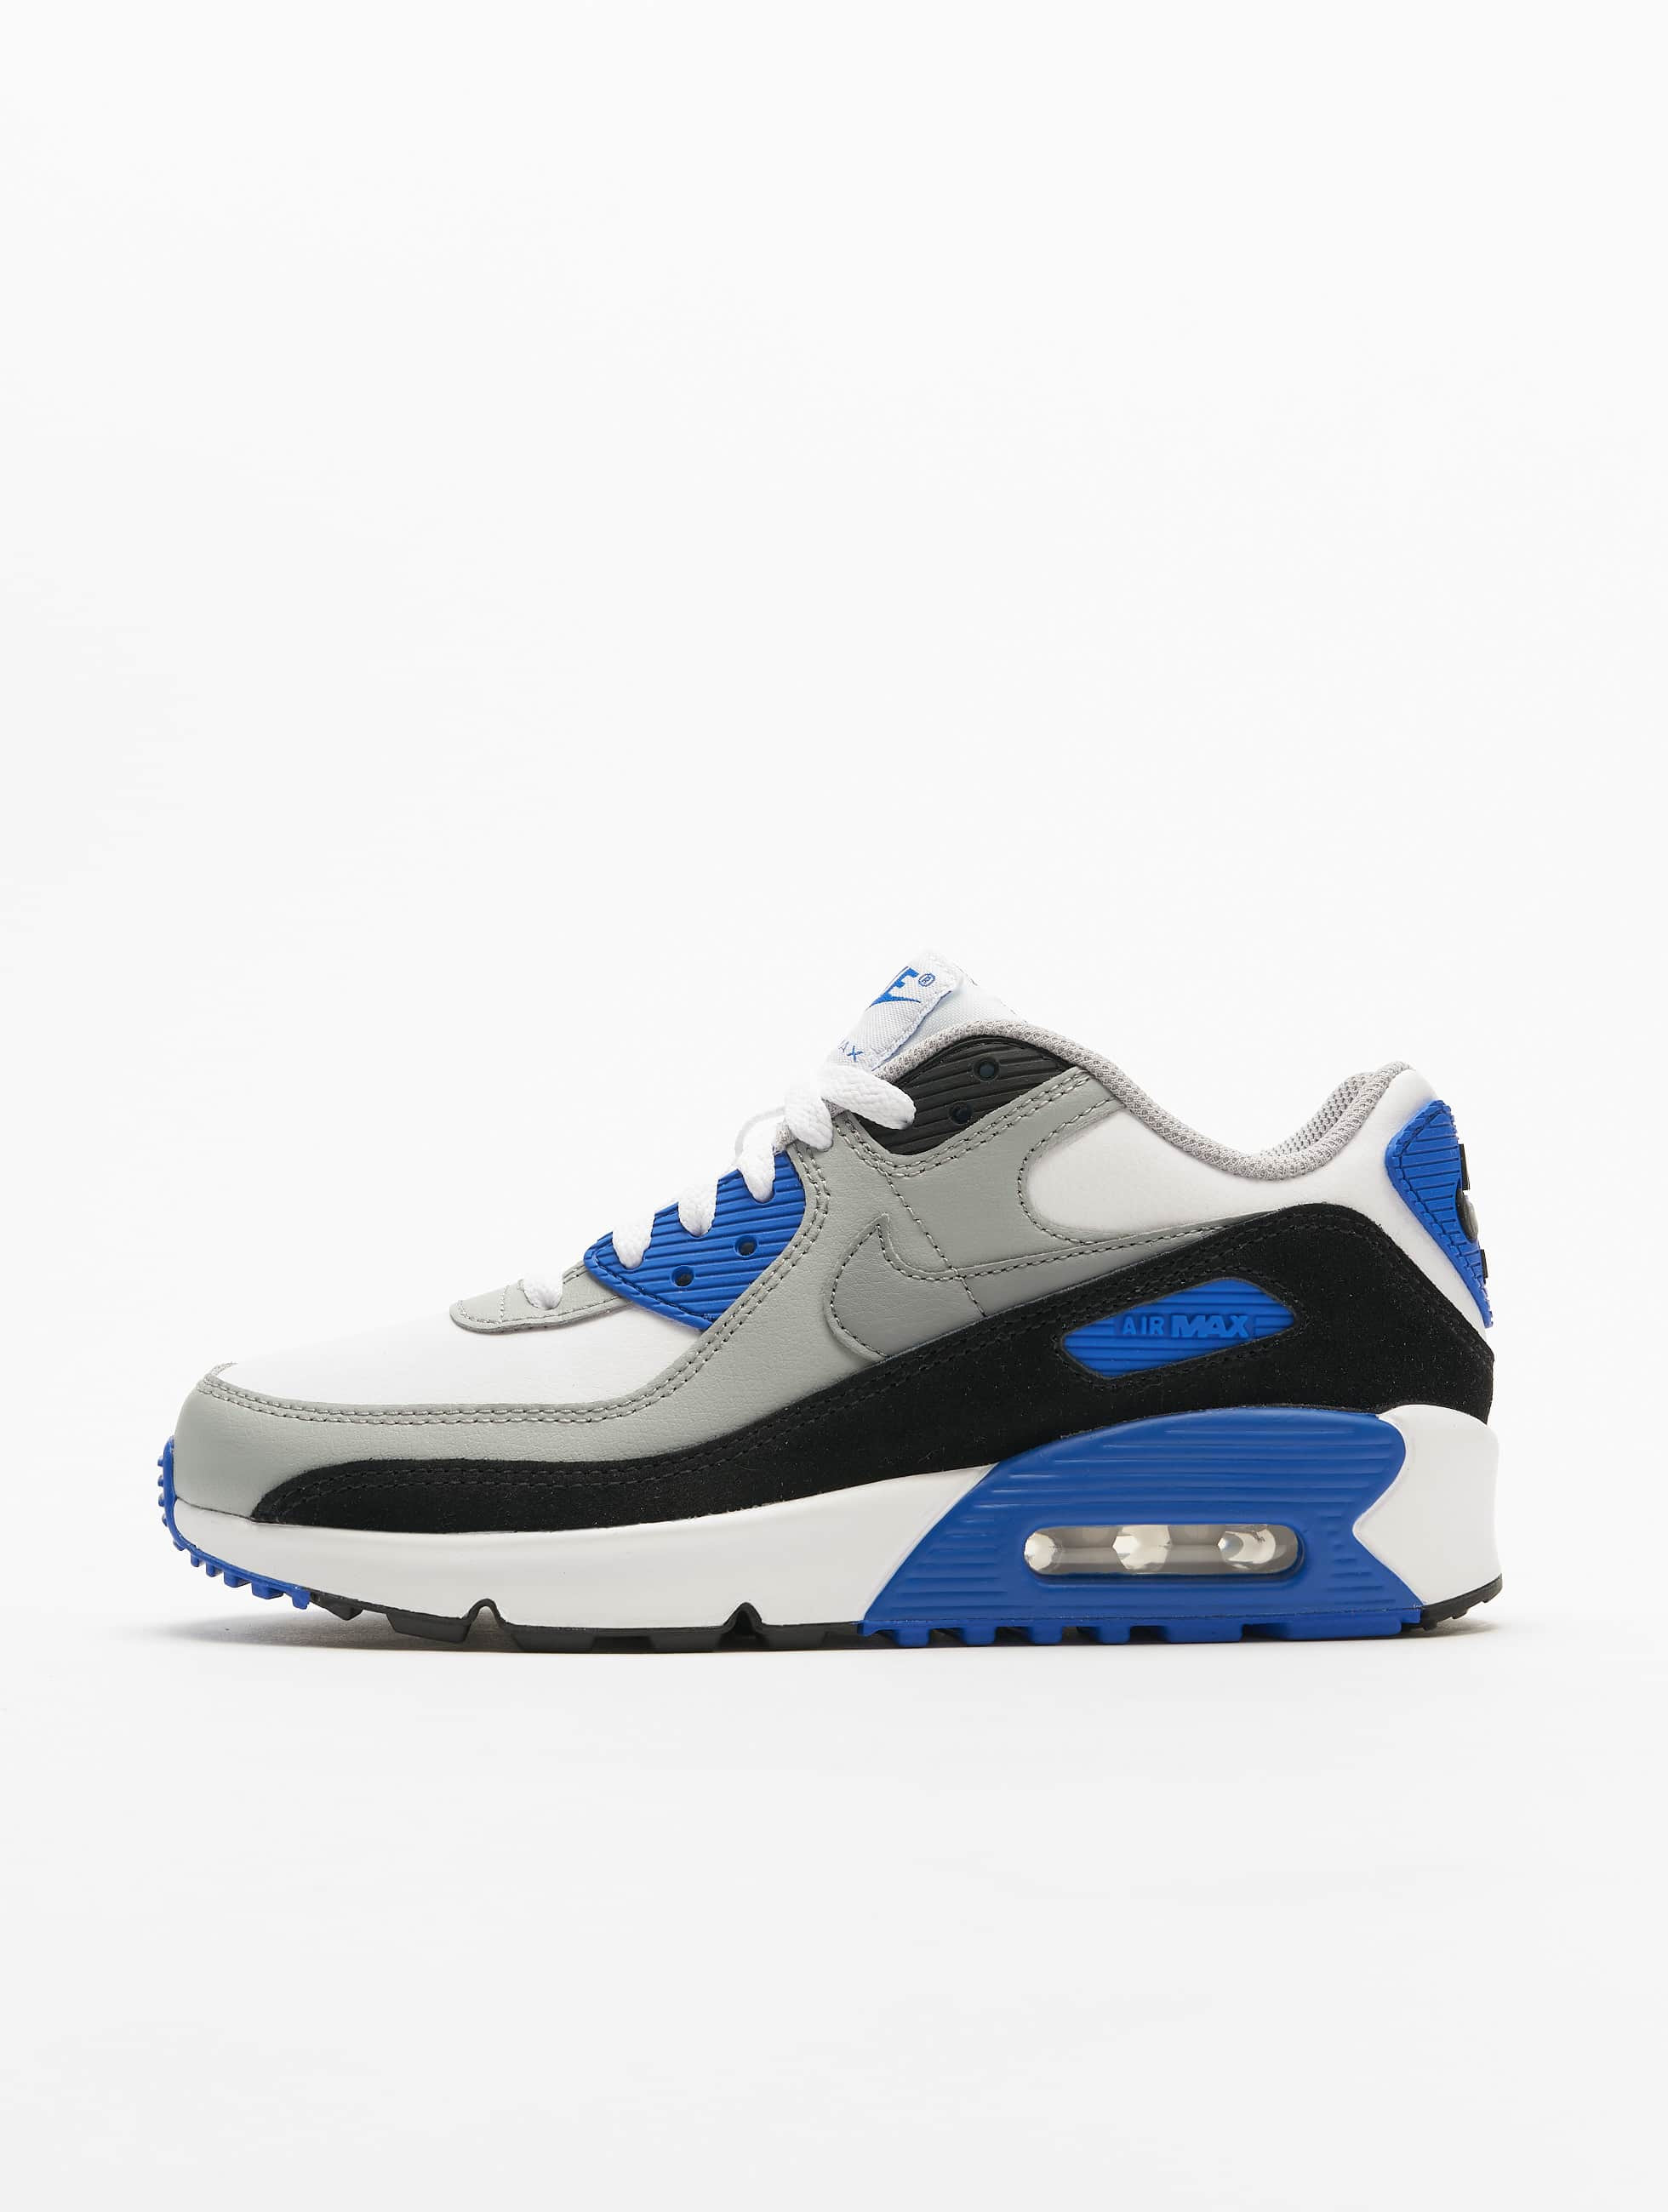 Nike Air Max 90 LTR (GS) Sneakers WhiteParticle GreyLt Smoke Grey